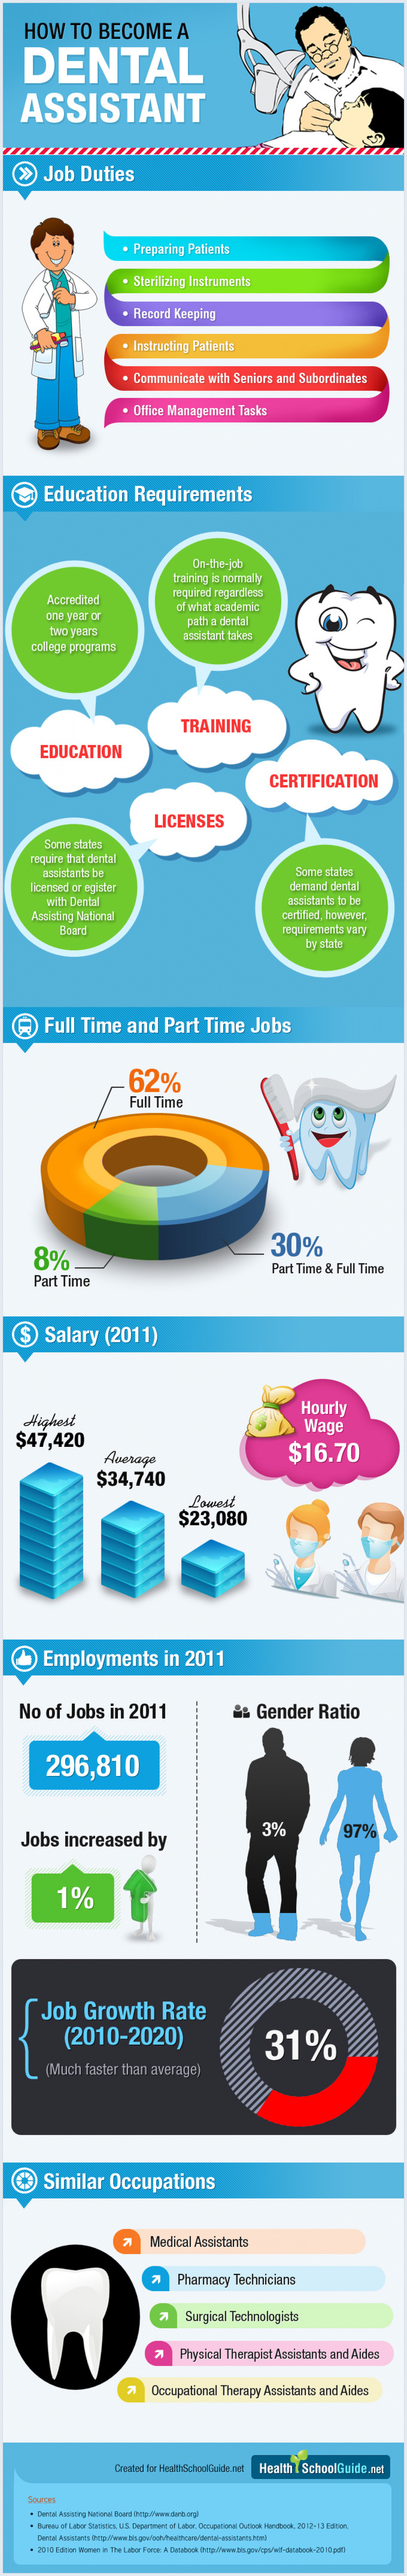 How to Become a Dental Assistant Infographic